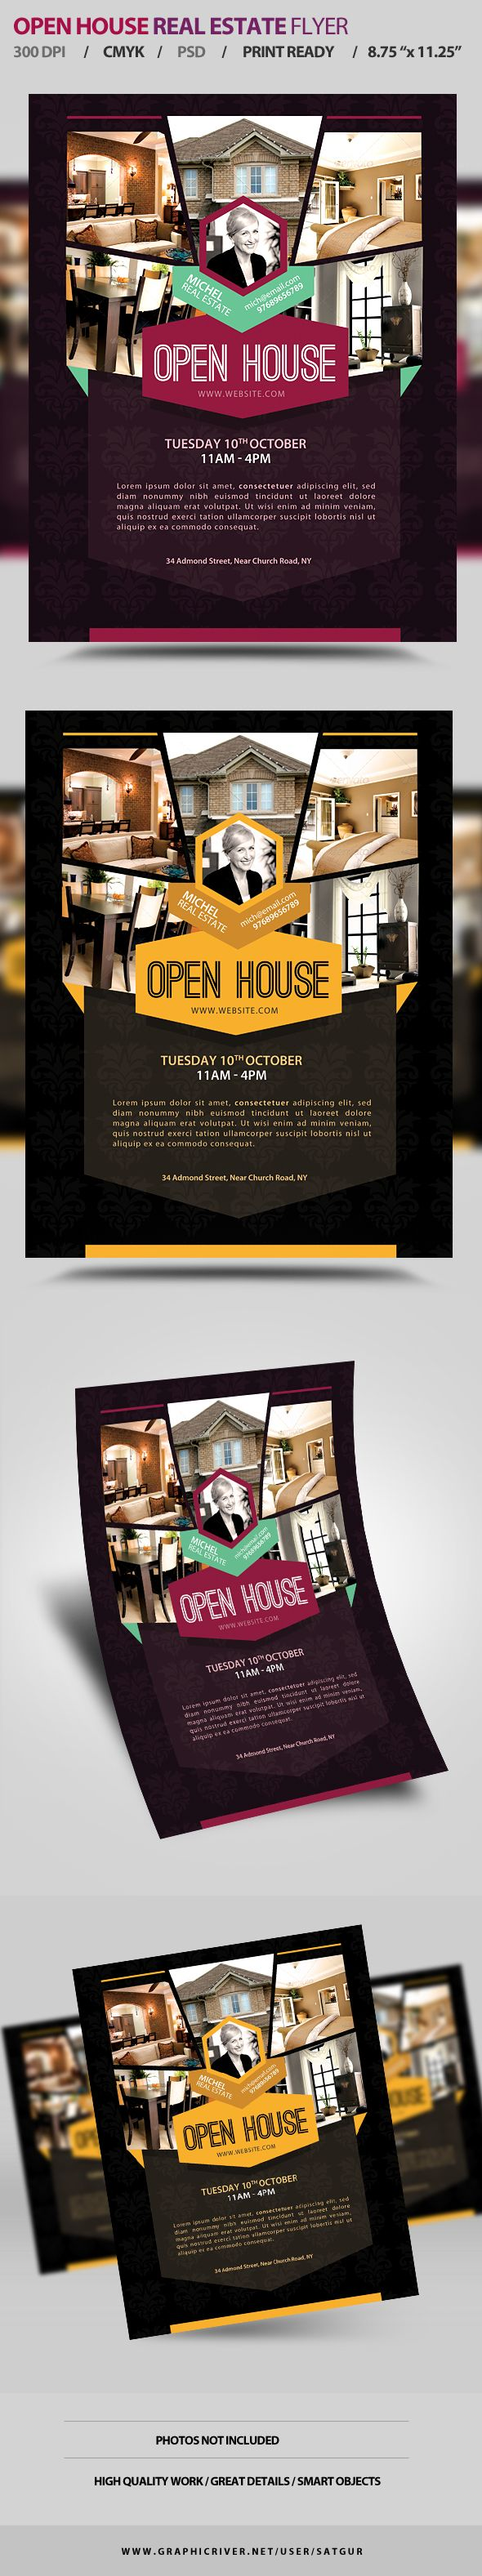 Open House Real Estate Promotion Flyer on Behance